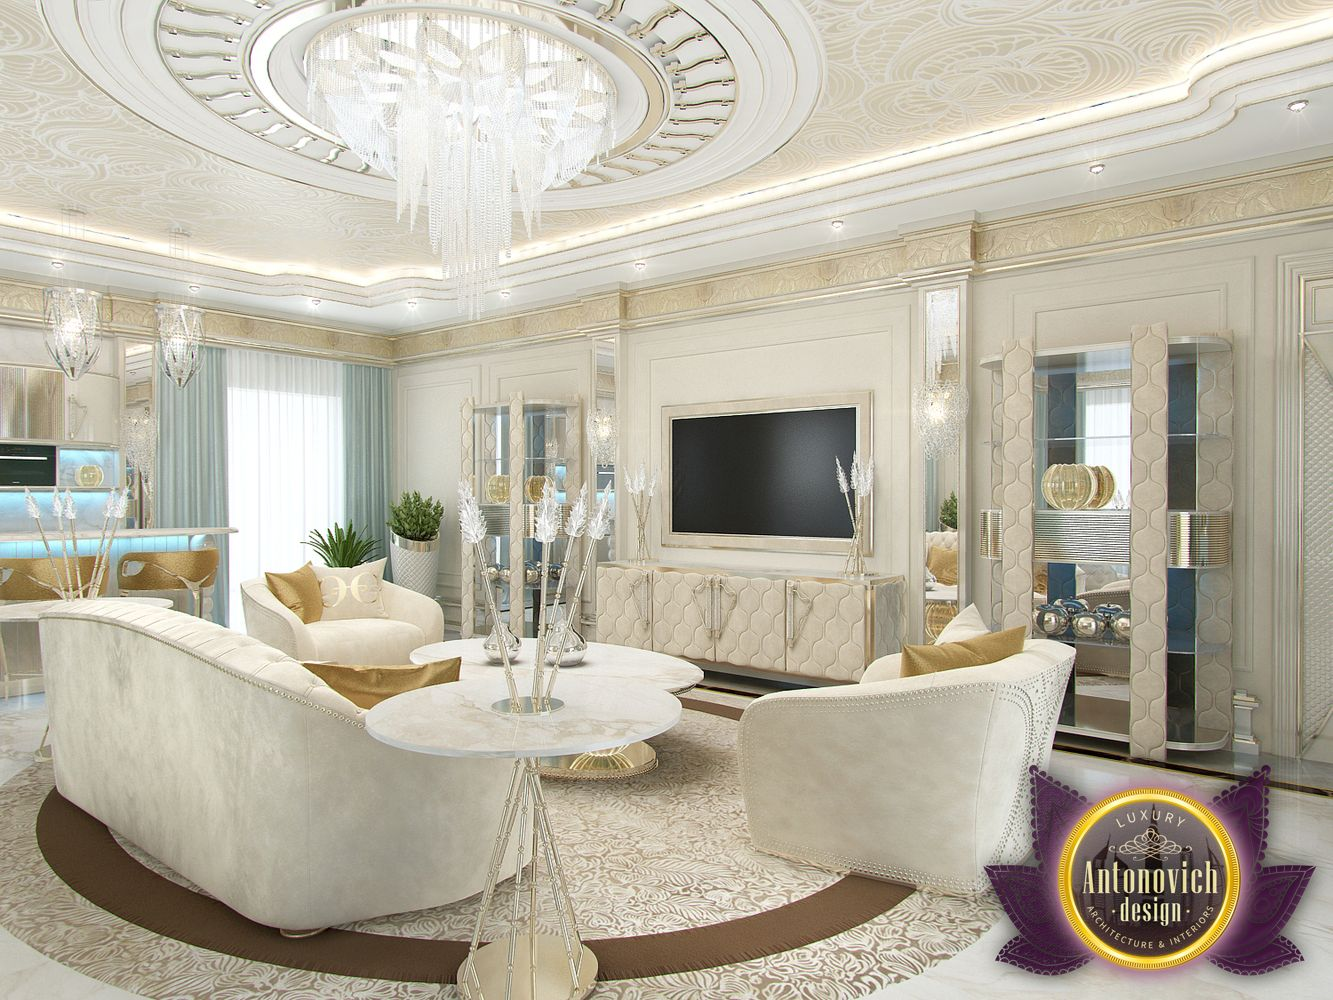 luxury antonovich design uae sitting room interior by luxury